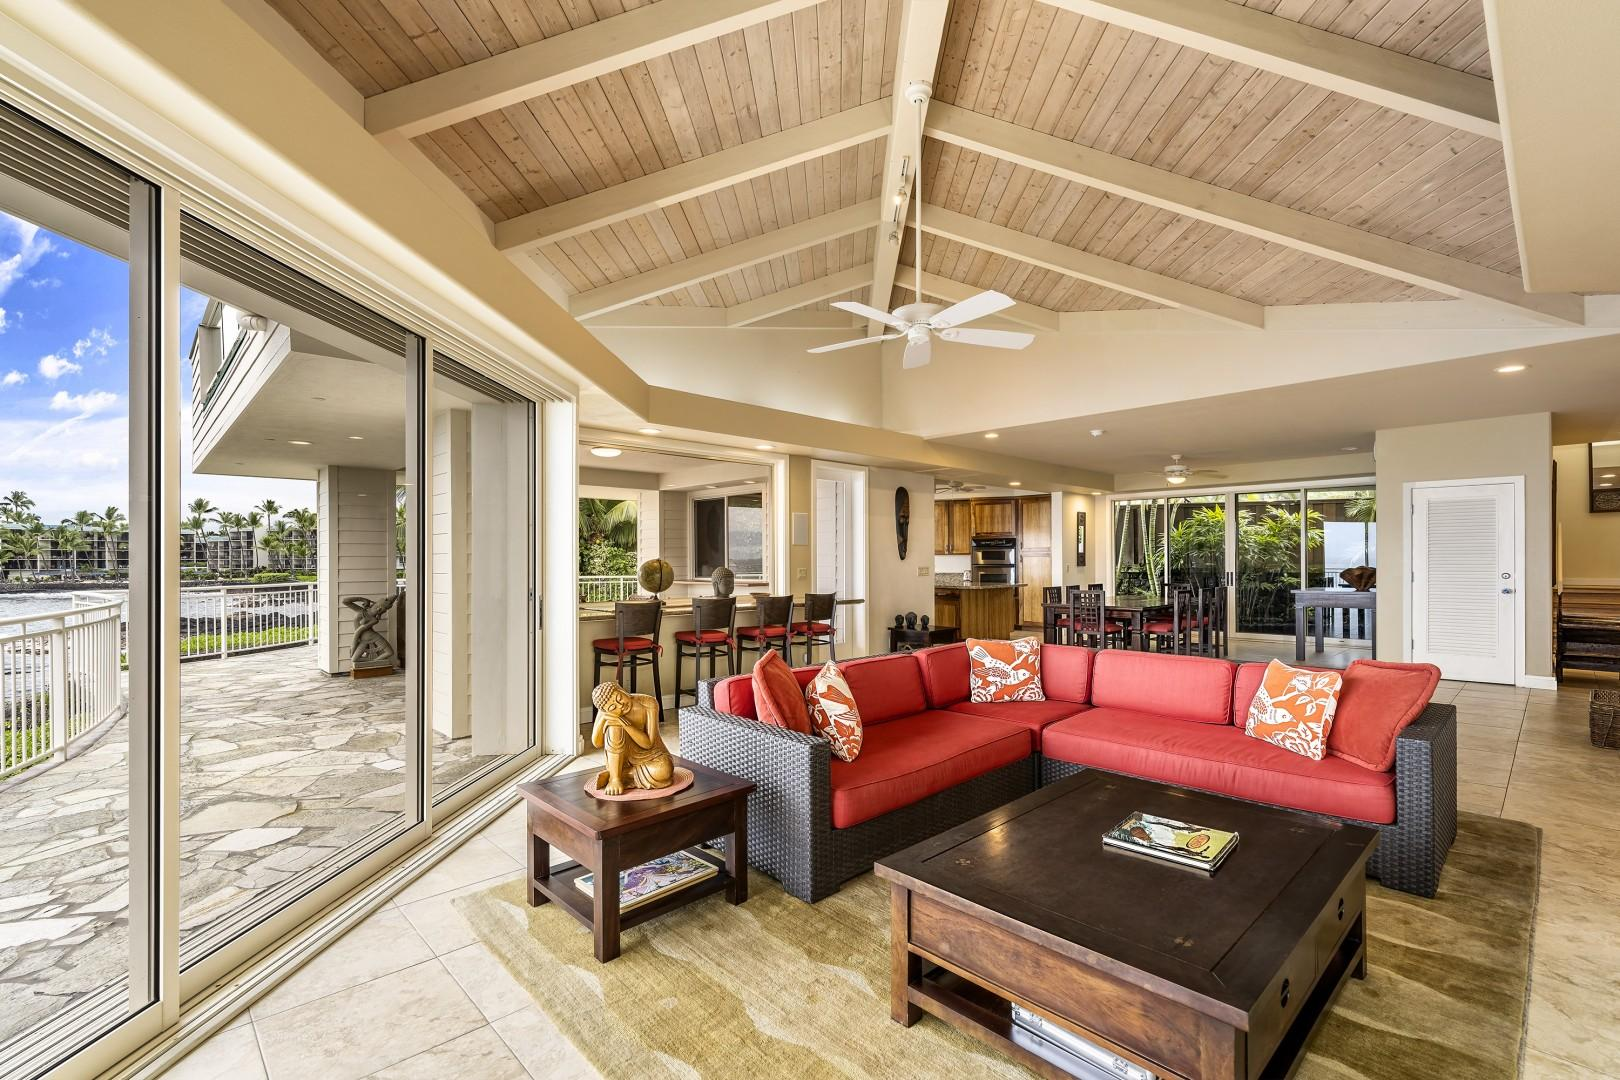 Open sightline and vaulted ceiling throughout